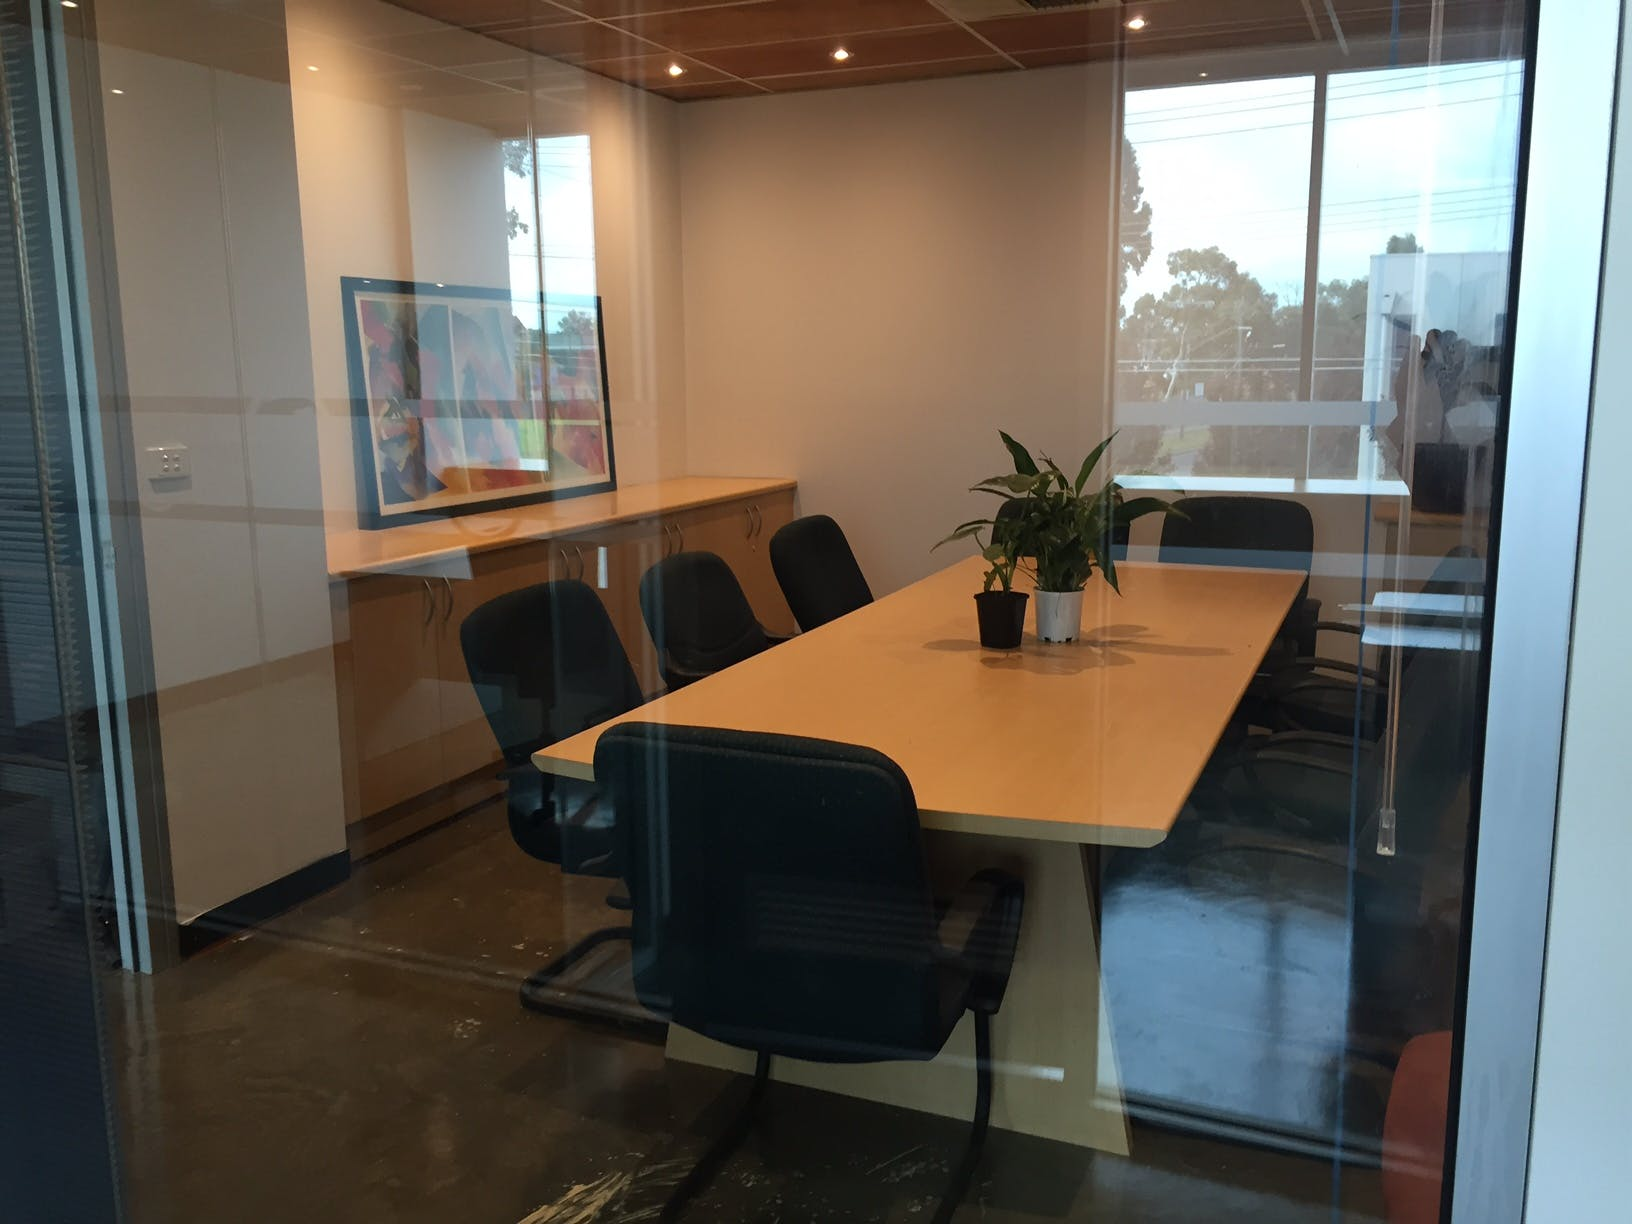 Office 1, serviced office at 1 Theobald Street, image 1